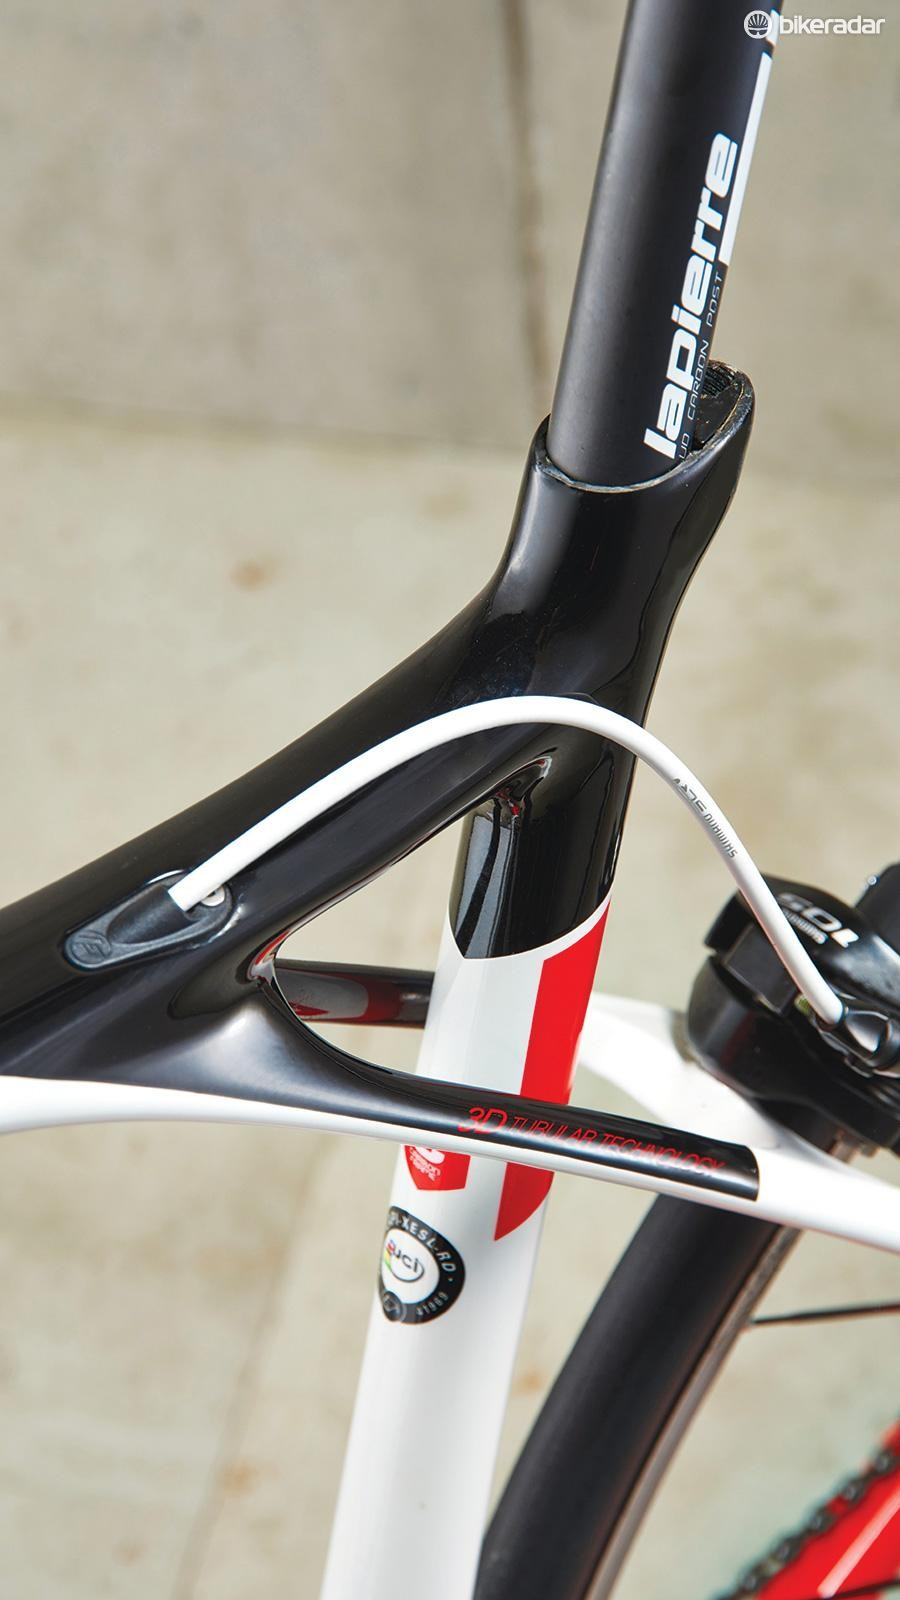 The Lapierre's unique frame configuration works wonders in the comfort stakes